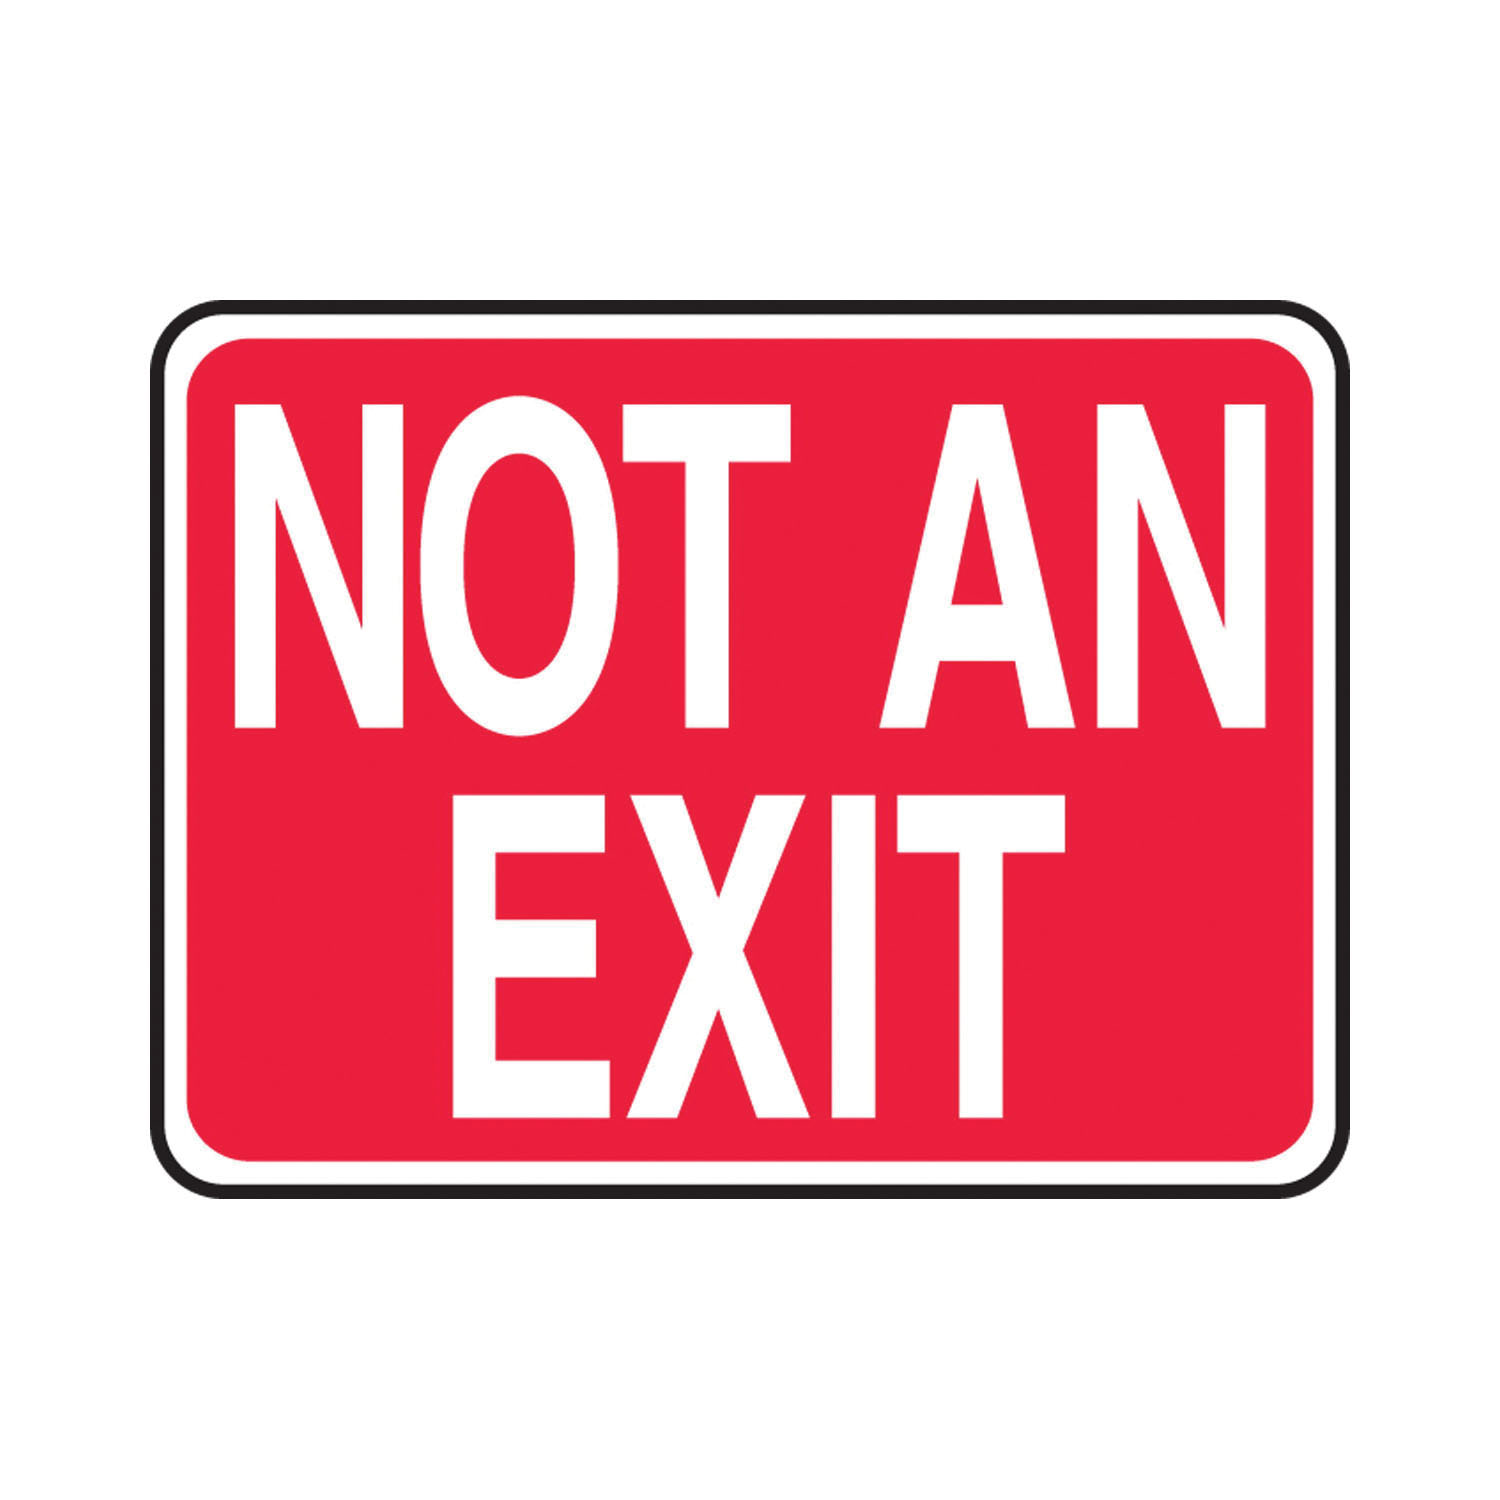 Accuform® MADM419VP Rectangle Safety Sign, 7 in H x 10 in W, Red on White, Plastic, Through Hole Mount